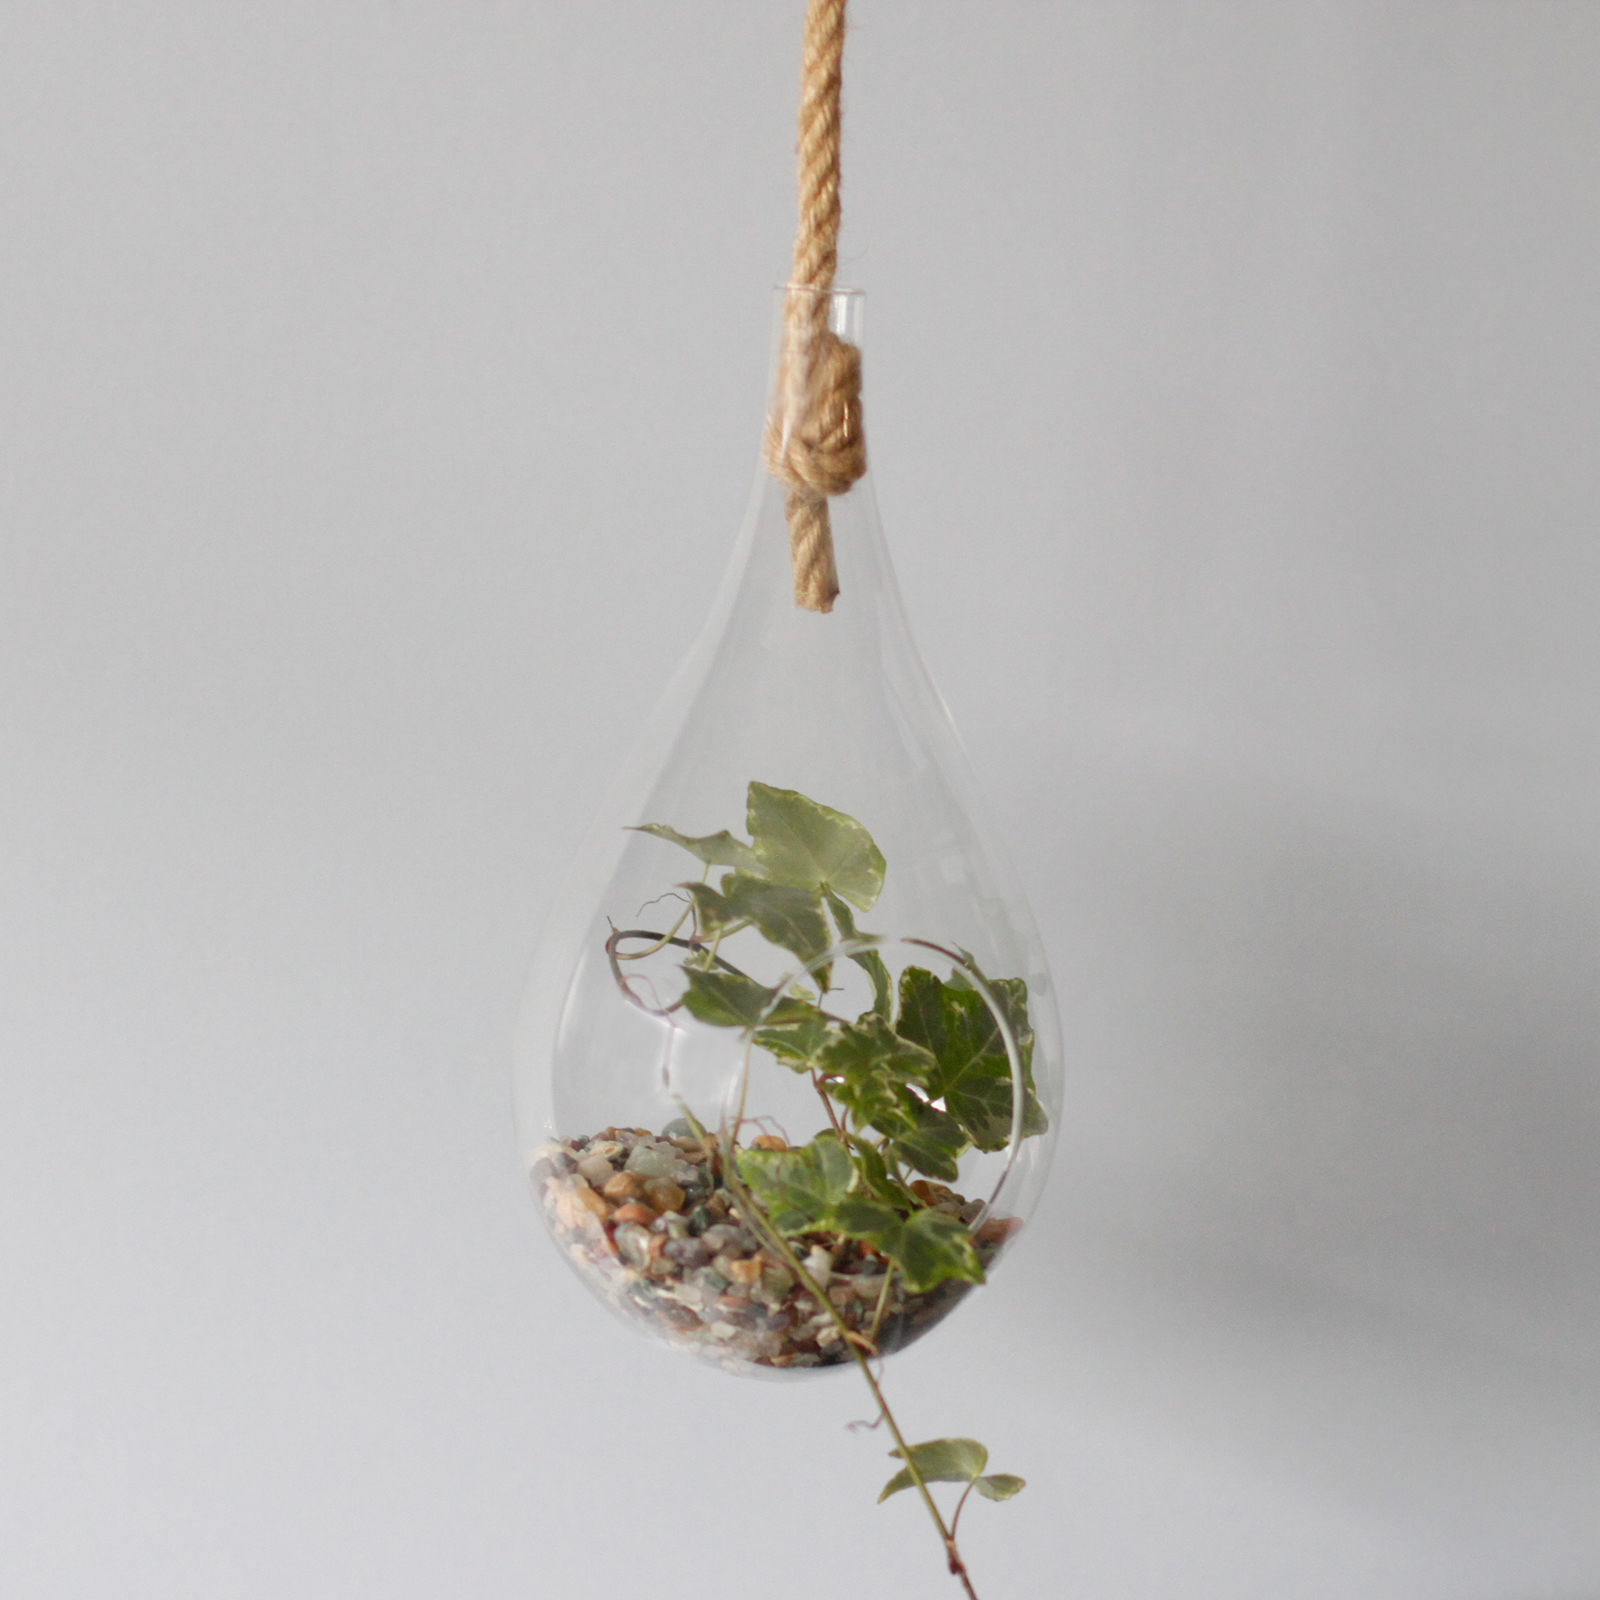 All Glass Terrarium -Hanging Teardrop  on Rope